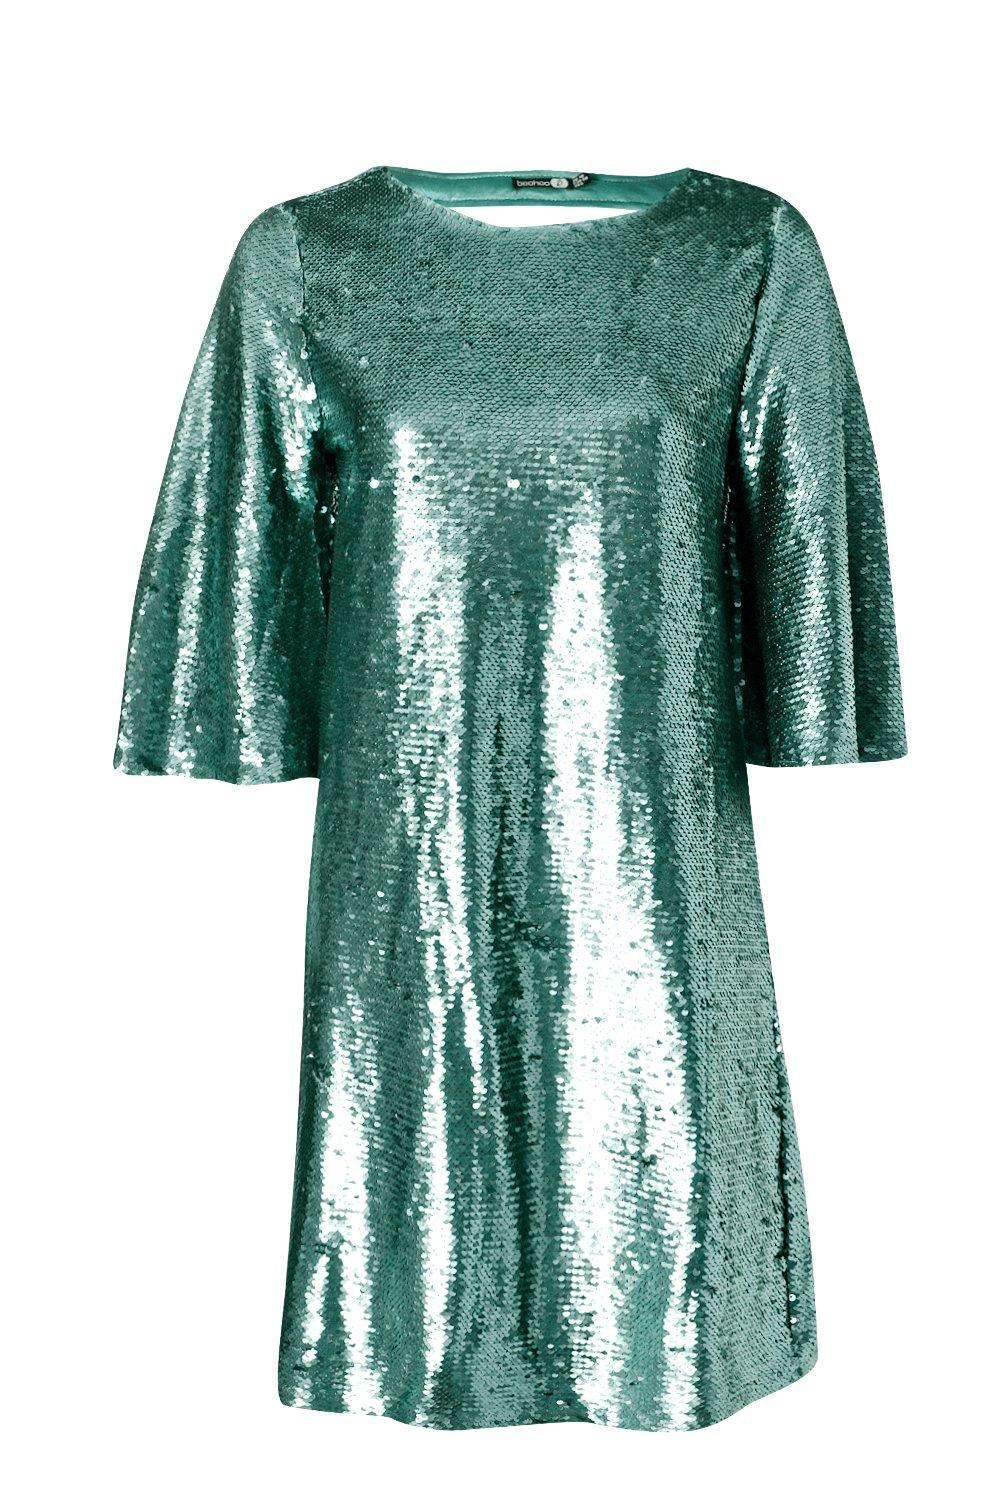 62886ebc960a5 Boohoo Boutique Leila All Over Sequin Shift Dress in Blue - Lyst